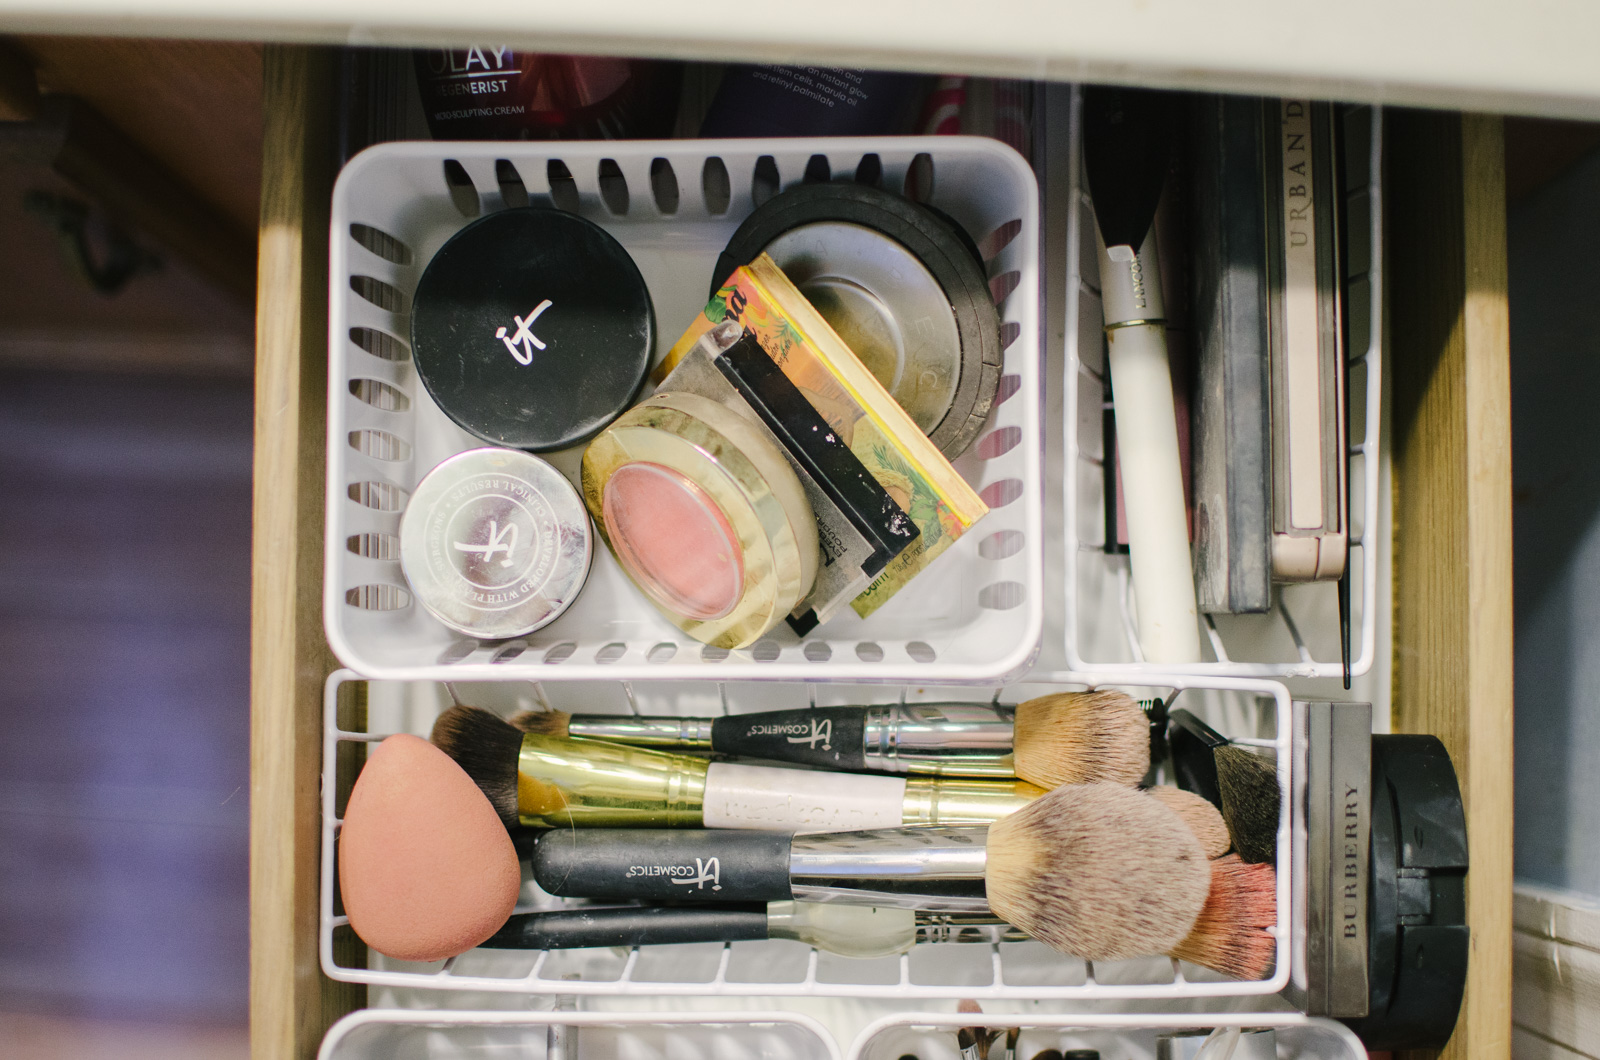 dollar store makeup drawer makeup organization | Come see how to quickly and easily organize your makeup drawer for less than $5! bylaurenm.com